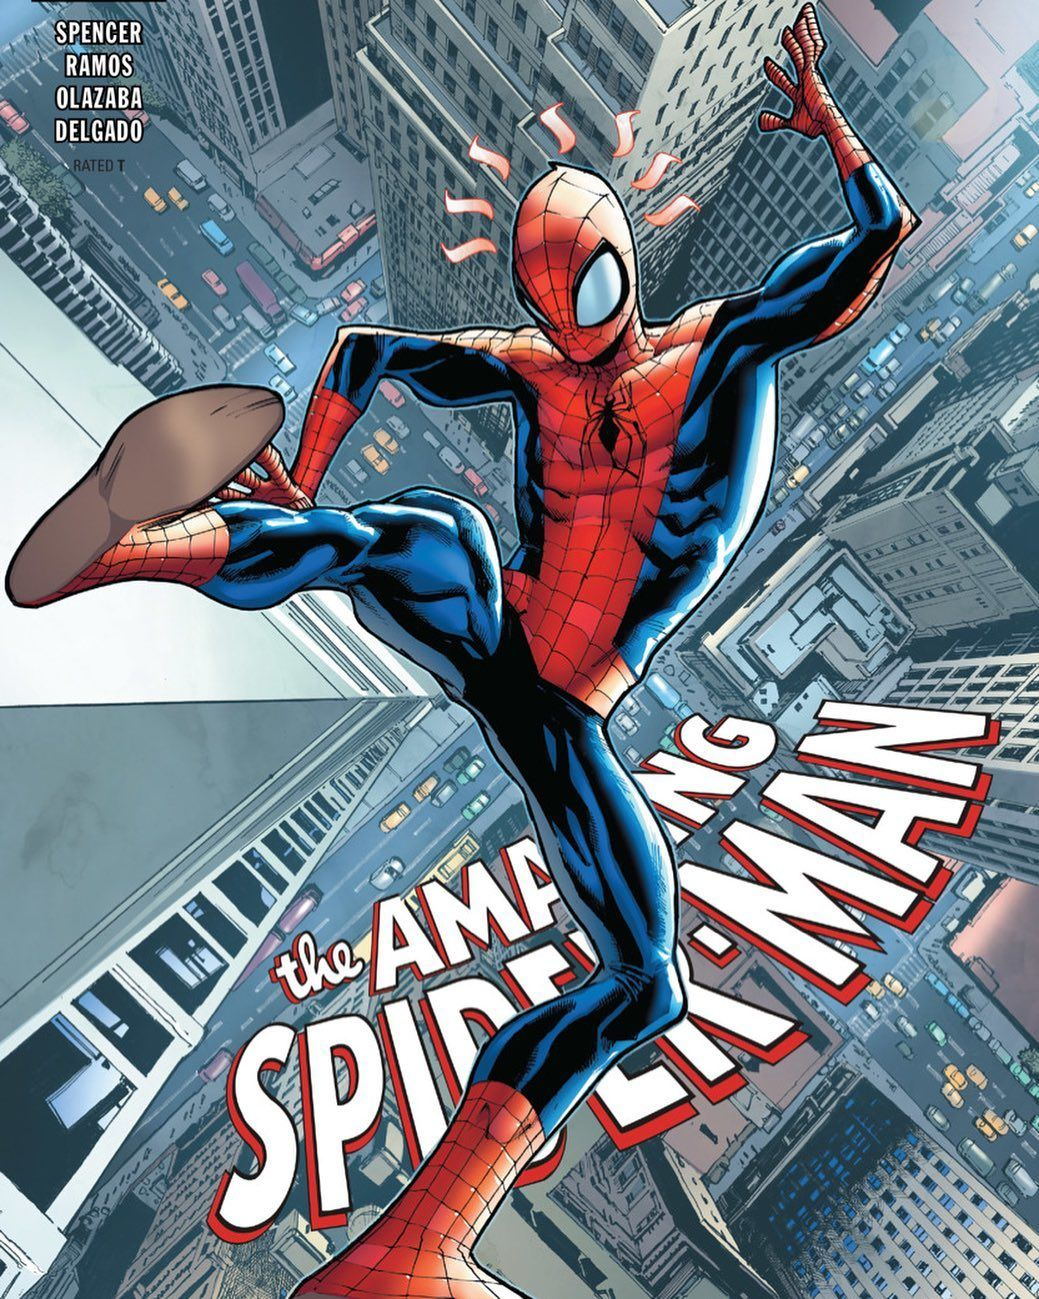 Free Falling The Amazing Spider-Man #8 Artist: Humberto Ramos (Aug 2019)